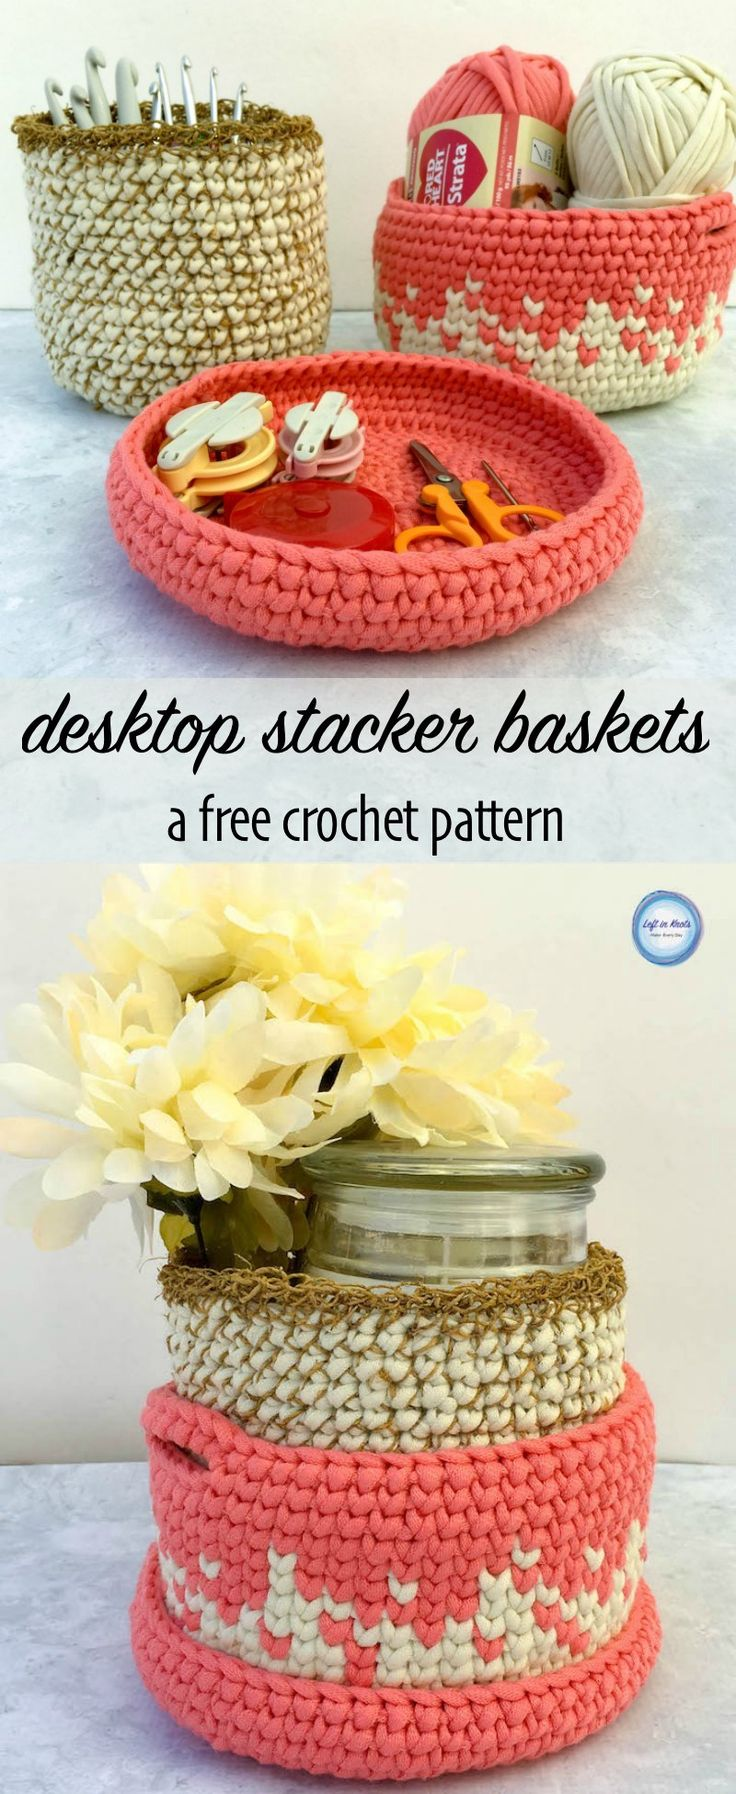 A modern free crochet pattern! Use Red Heart Strata Yarn or Bernat Maker Home Dec to make a set of these modern nesting baskets. This pattern is a perfect, fast organizing project. Or fill it with a candle or baby essentials to turn this into a fabulous, functional gift basket. Perfect for housewarming or baby gifts!